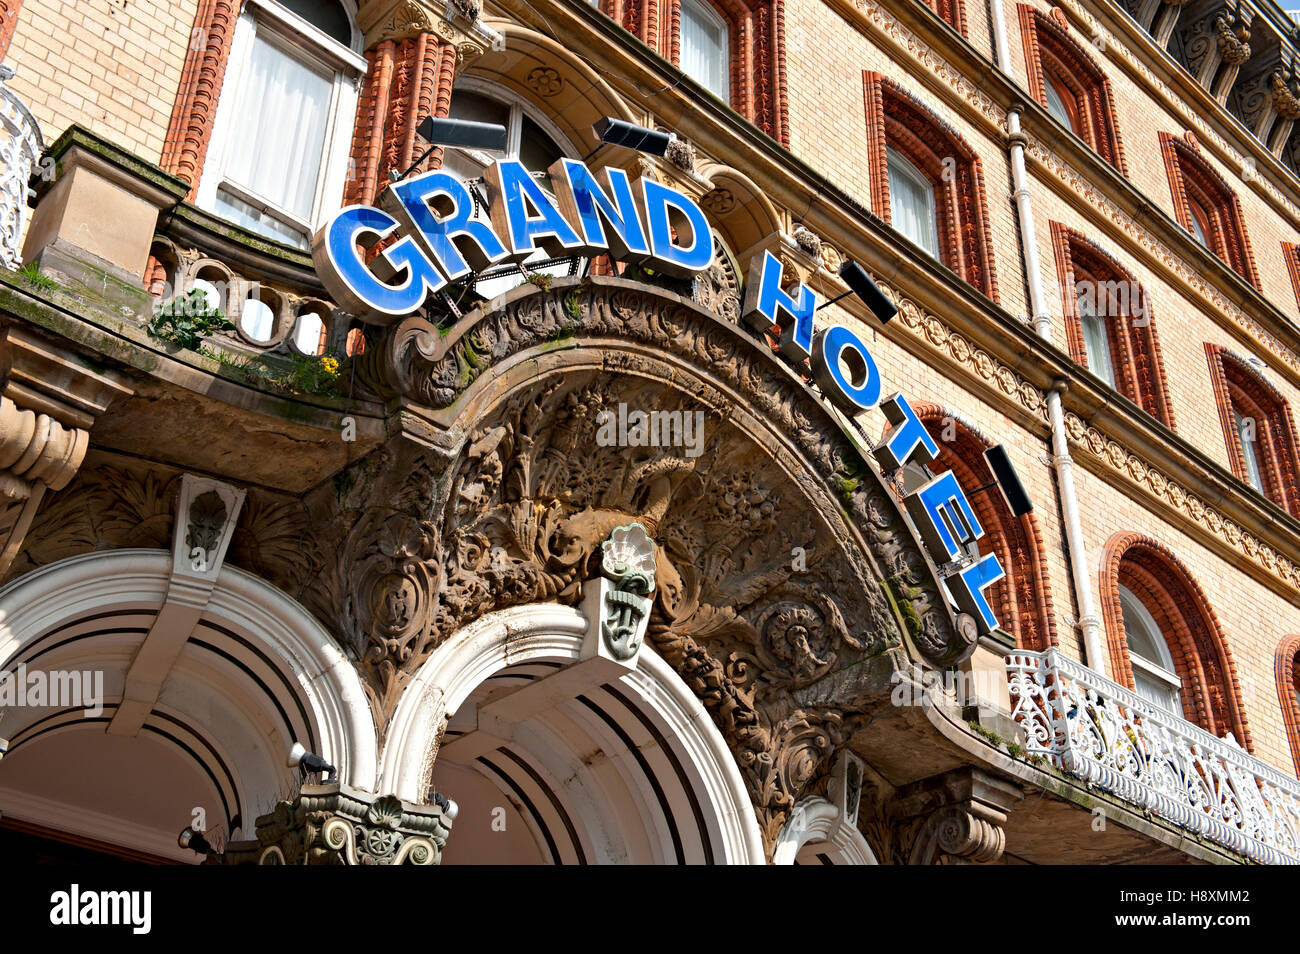 Entrance to The Grand Hotel, Scarborough, North Yorks. UK - Stock Image